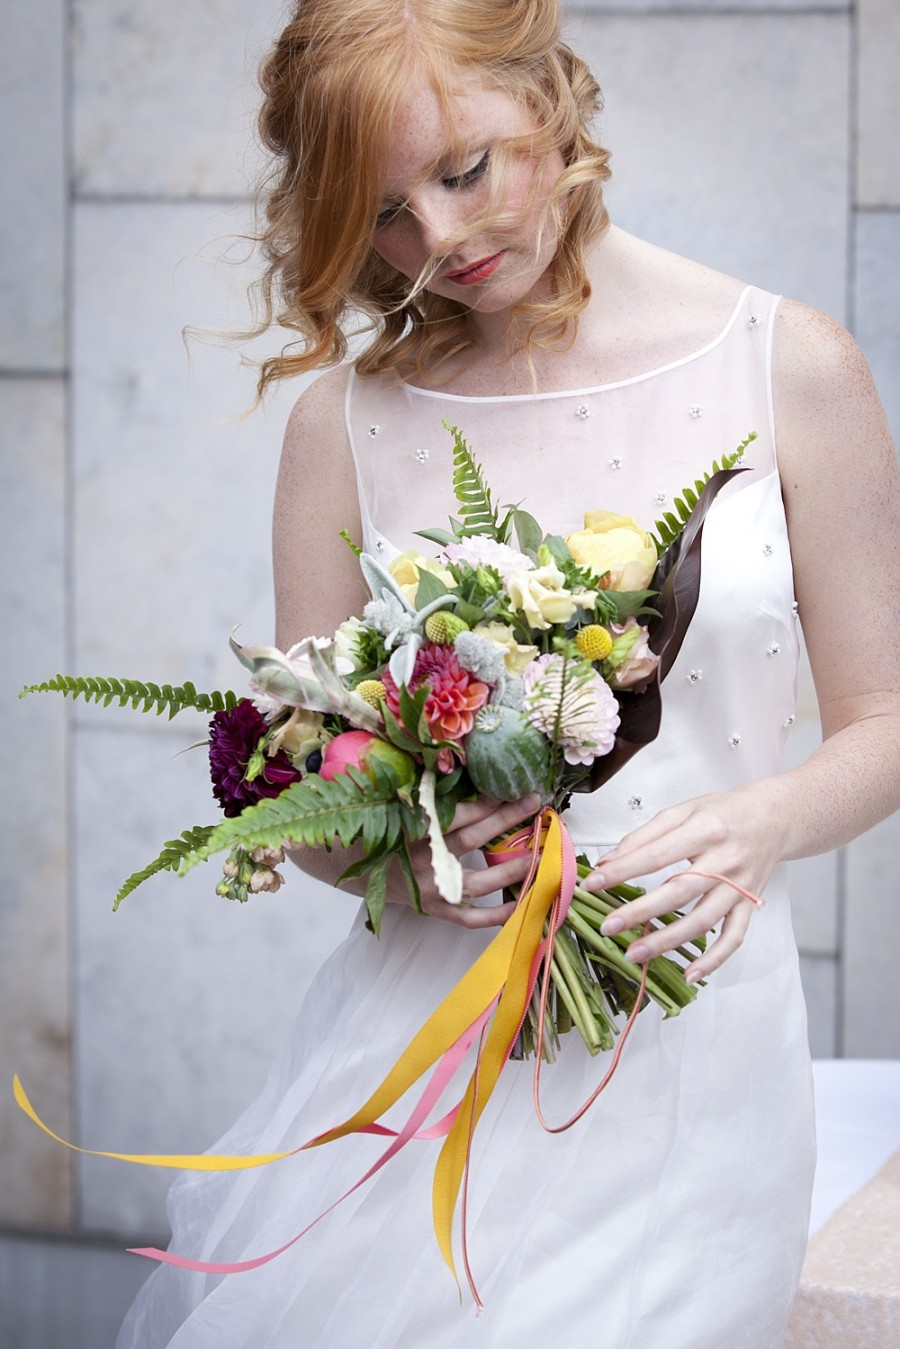 A Mid-century Modern Bridal Shoot with an Edgy Geometric Twist!